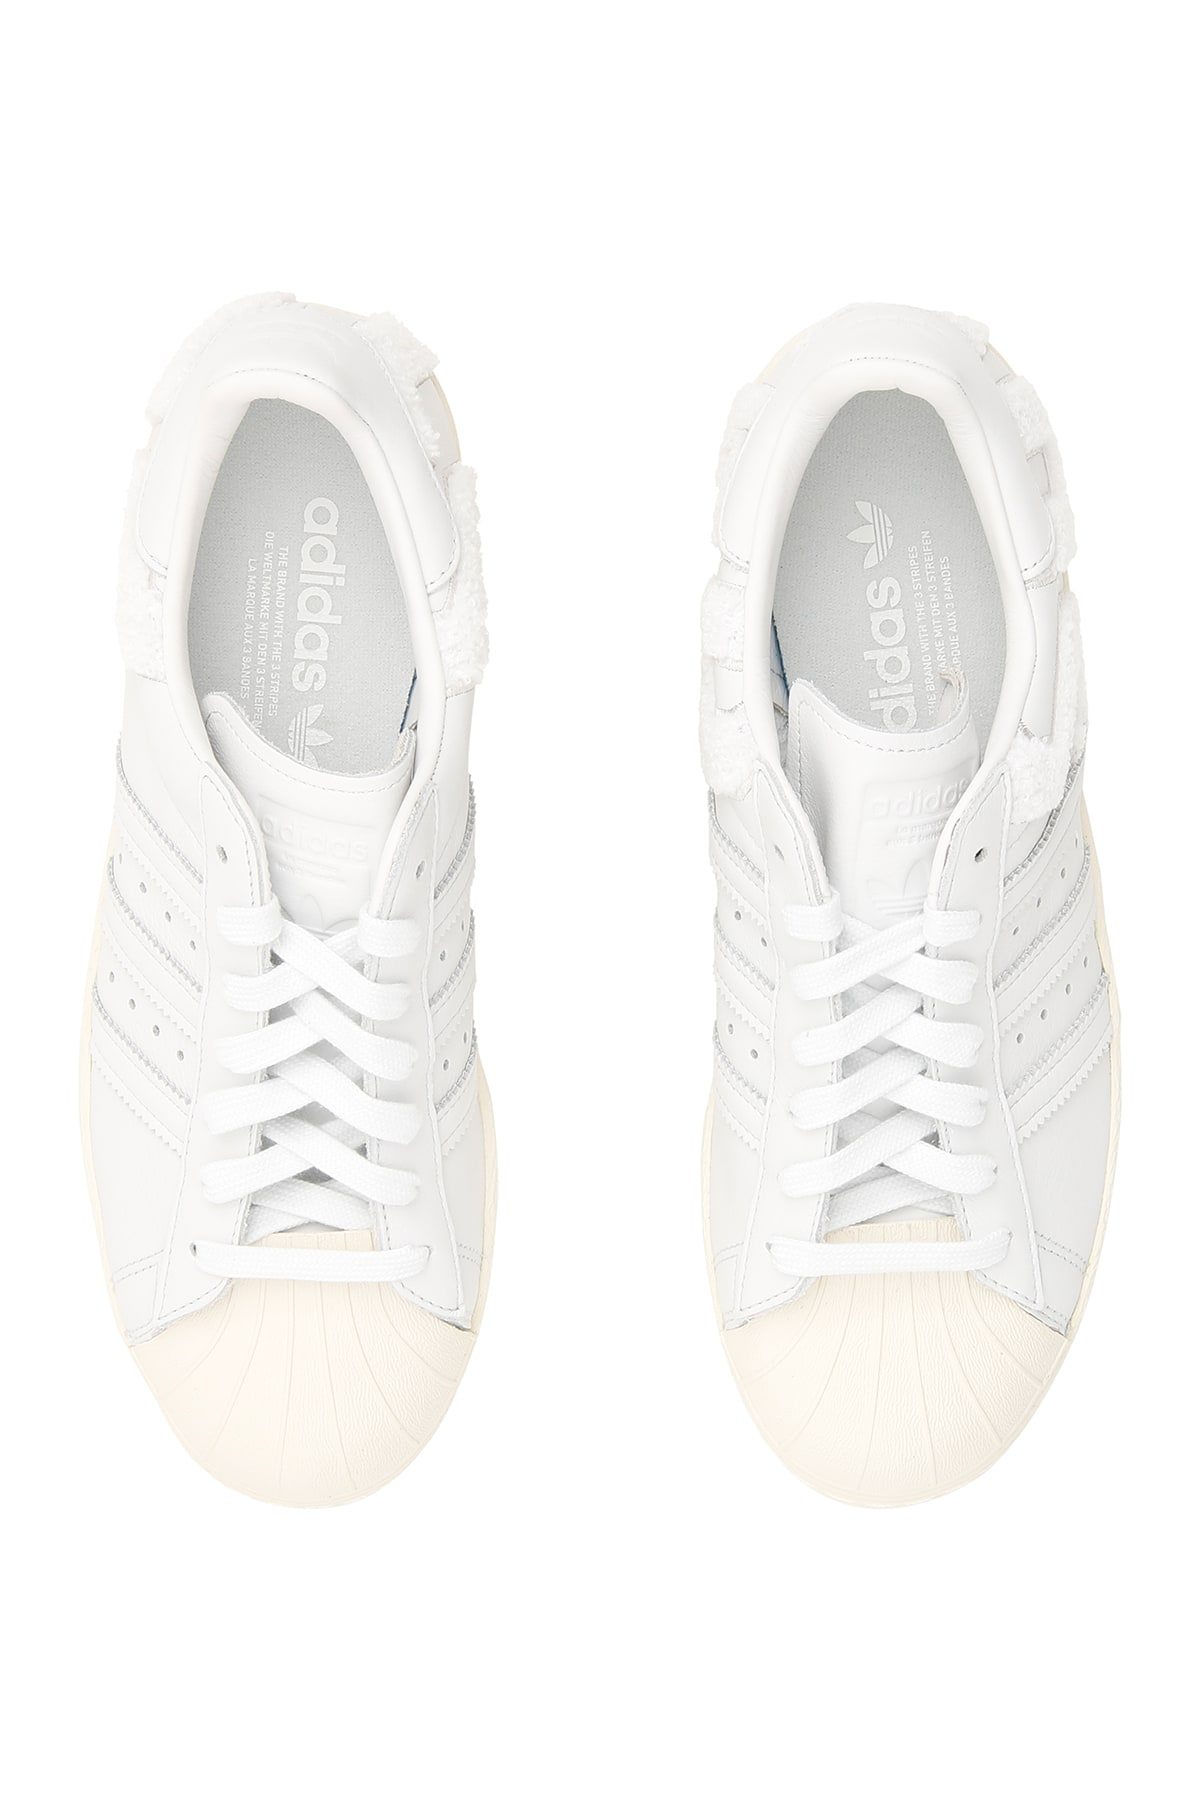 sale retailer 14536 5c096 Adidas Adidas Superstar Sst 80s Sneakers - CRYSTAL WHITE OFF ...